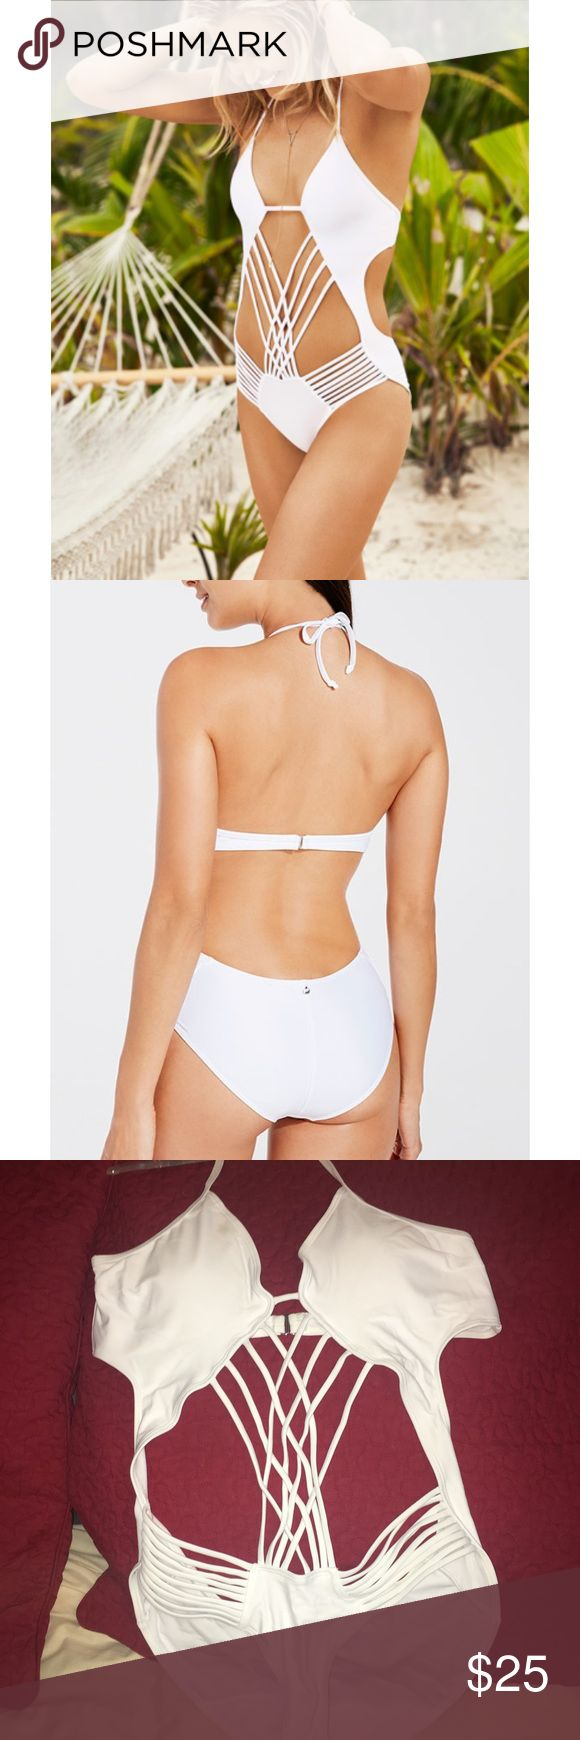 White Fabletics Monokini Never before worn white monokini from fabletics that I ordered and it just ended up not being the right size for me. The top is padded. There is one small spot where foundation got on the top left while trying it on that I can get out before shipping. It's a super great piece to grab for your next vacation! Fabletics Swim One Pieces